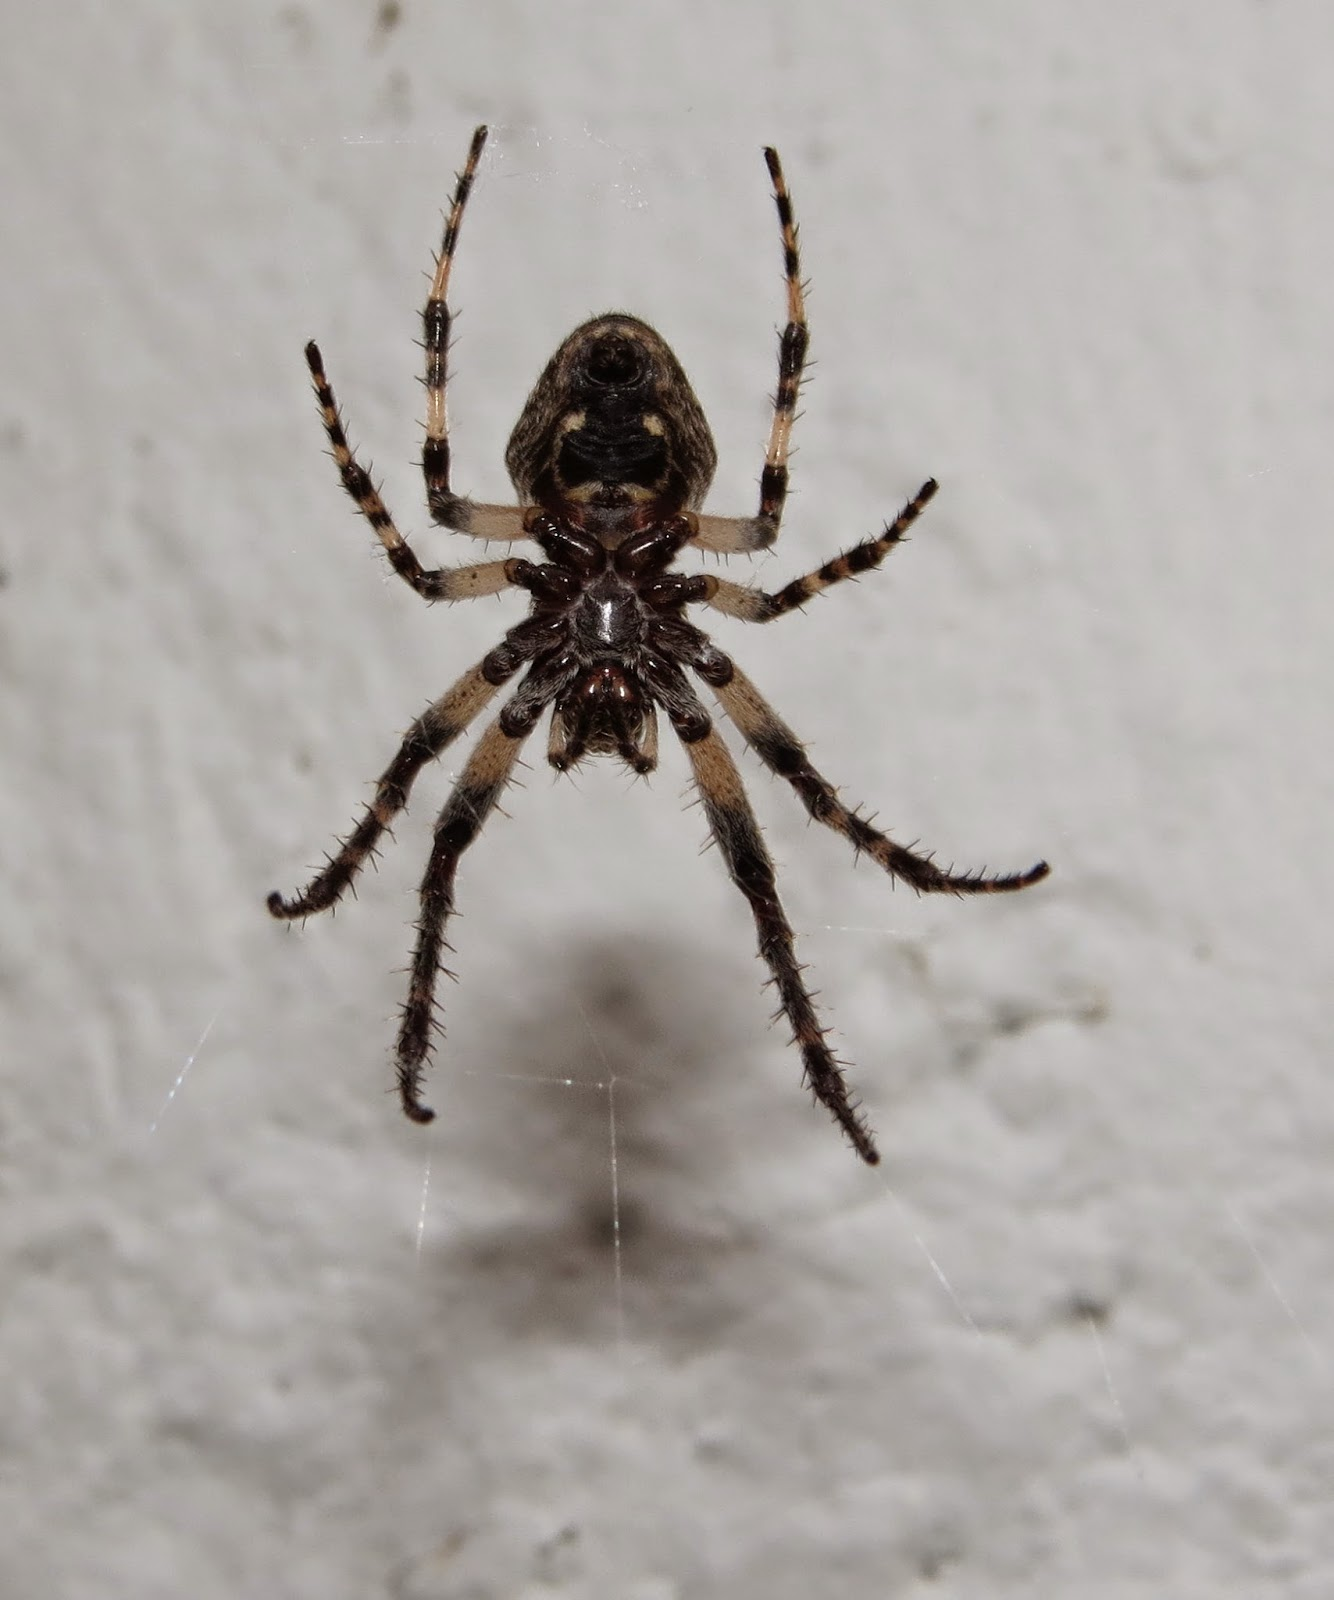 Drawn spider bug Like prey outdoor be Spider)